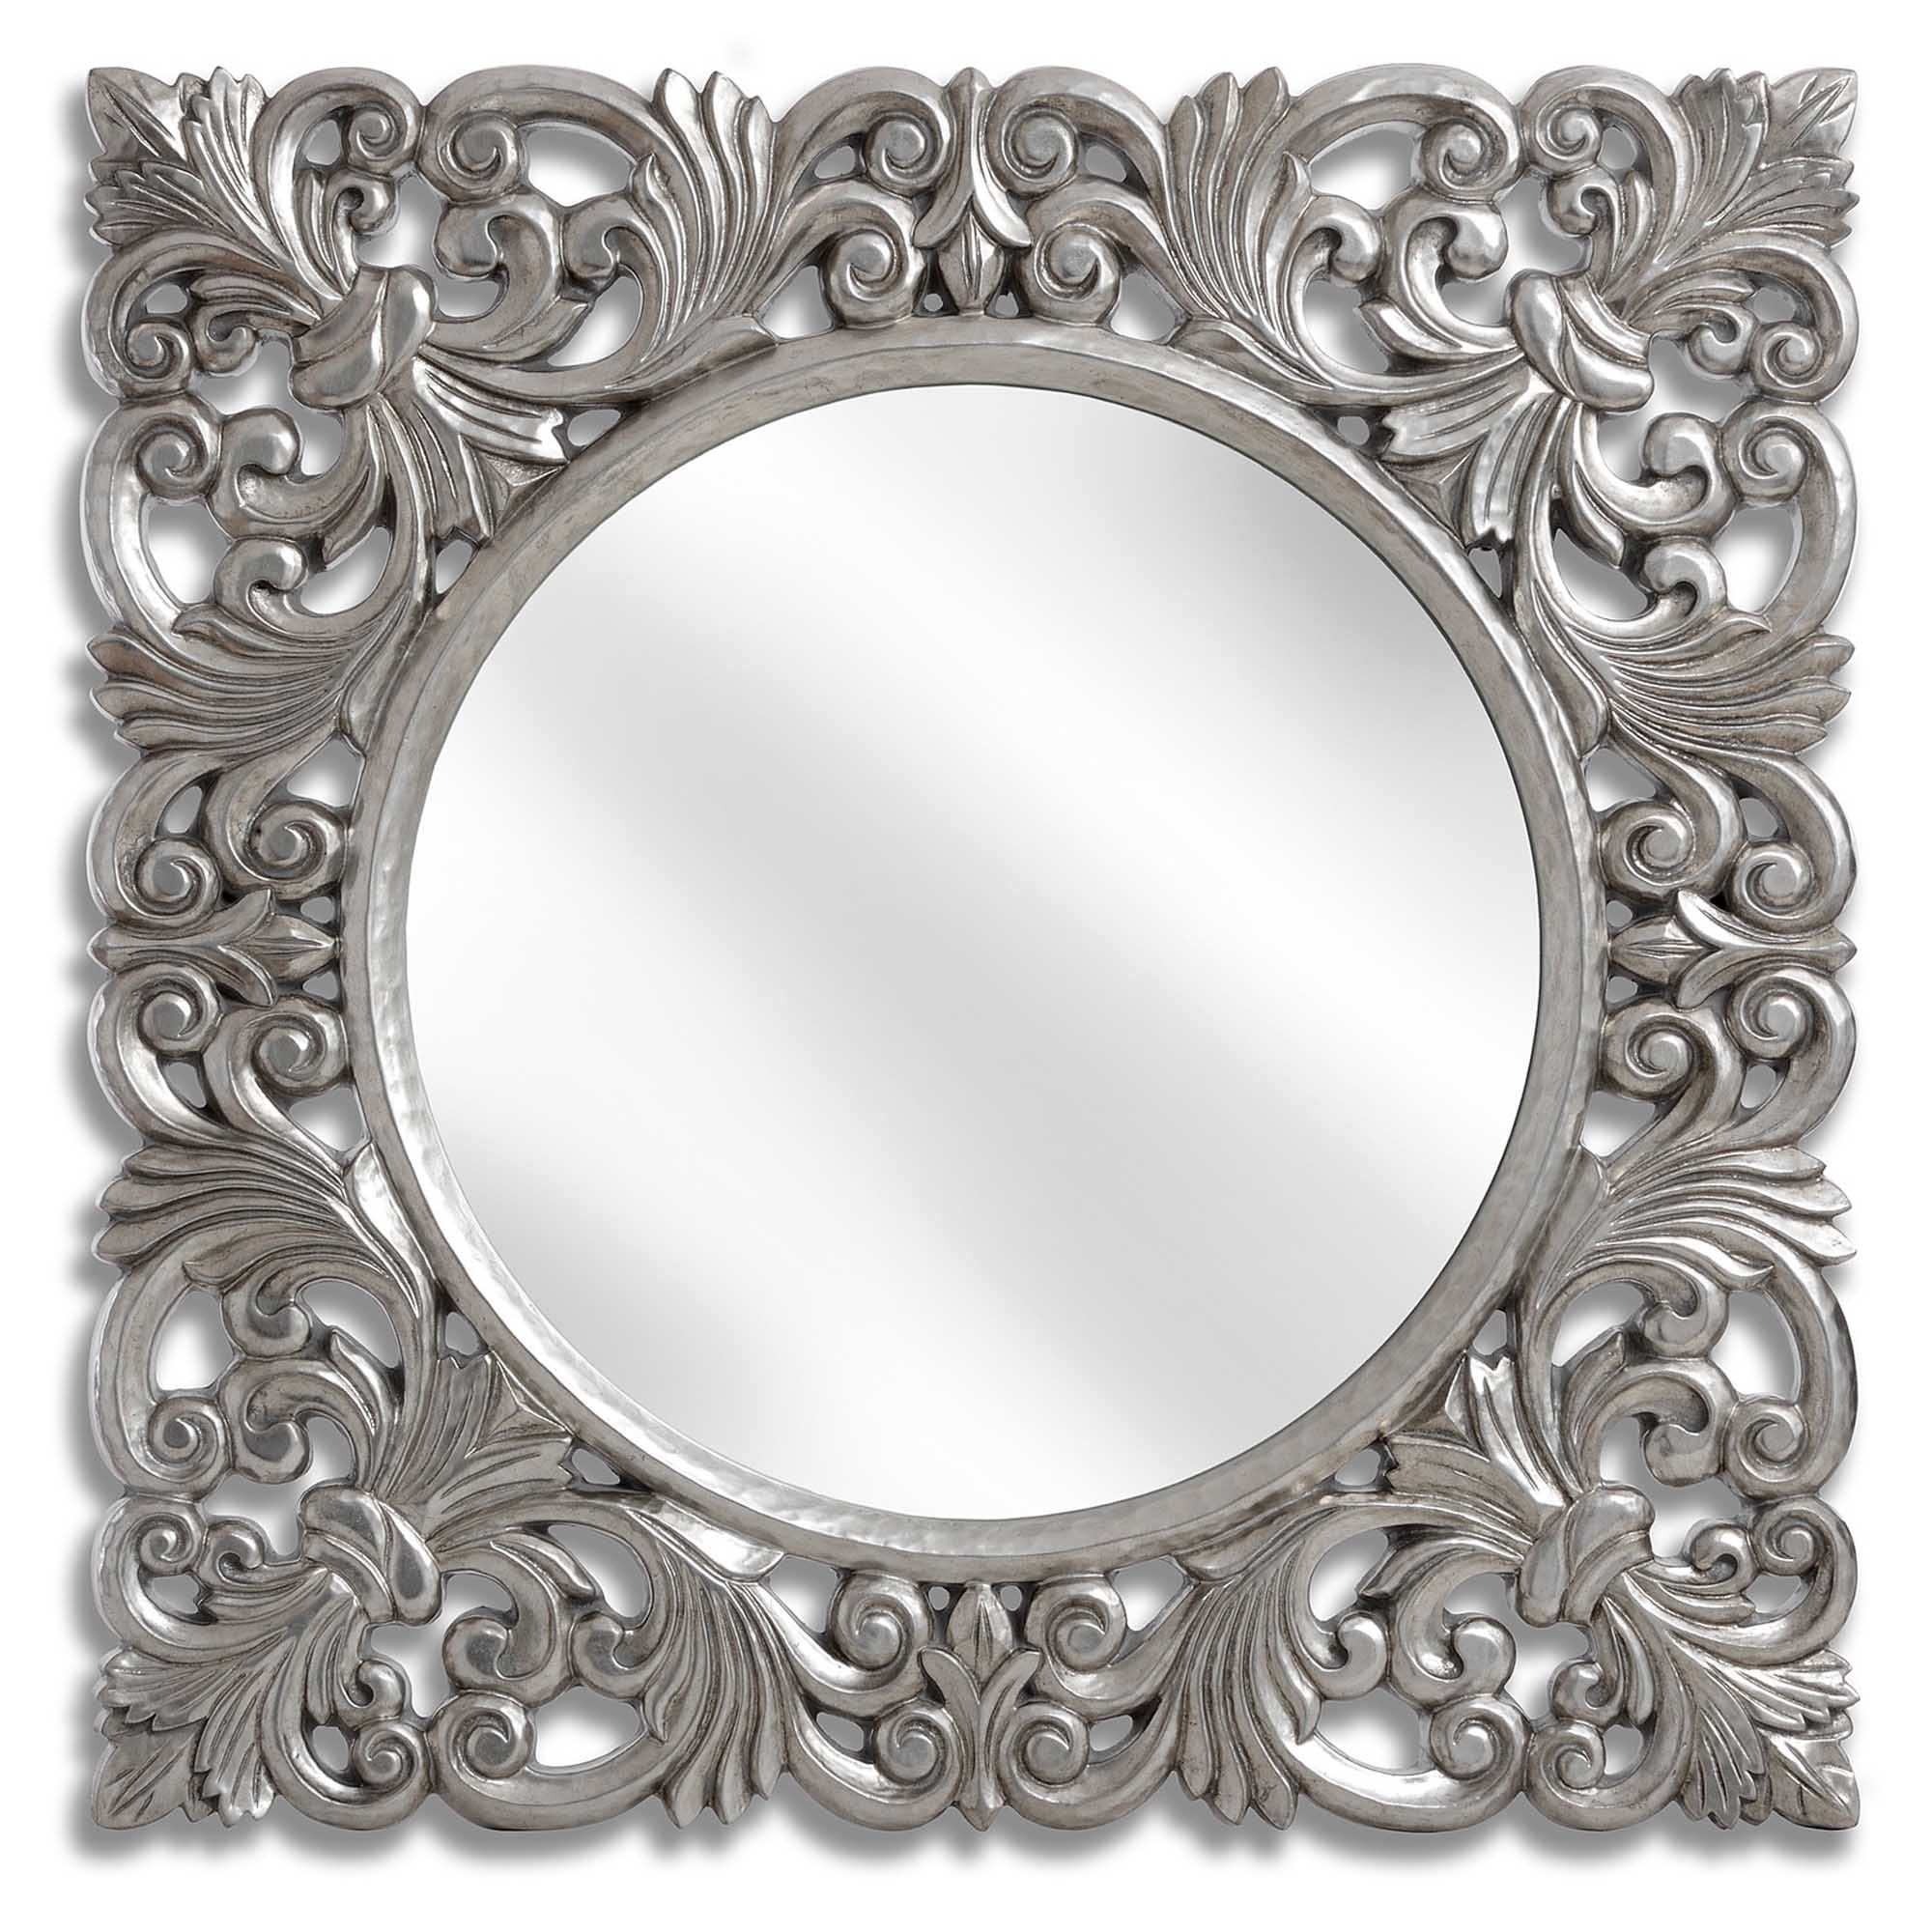 Preferred Silver Wall Mirrors For Baroque Antique French Style Silver Wall Mirror (View 5 of 20)